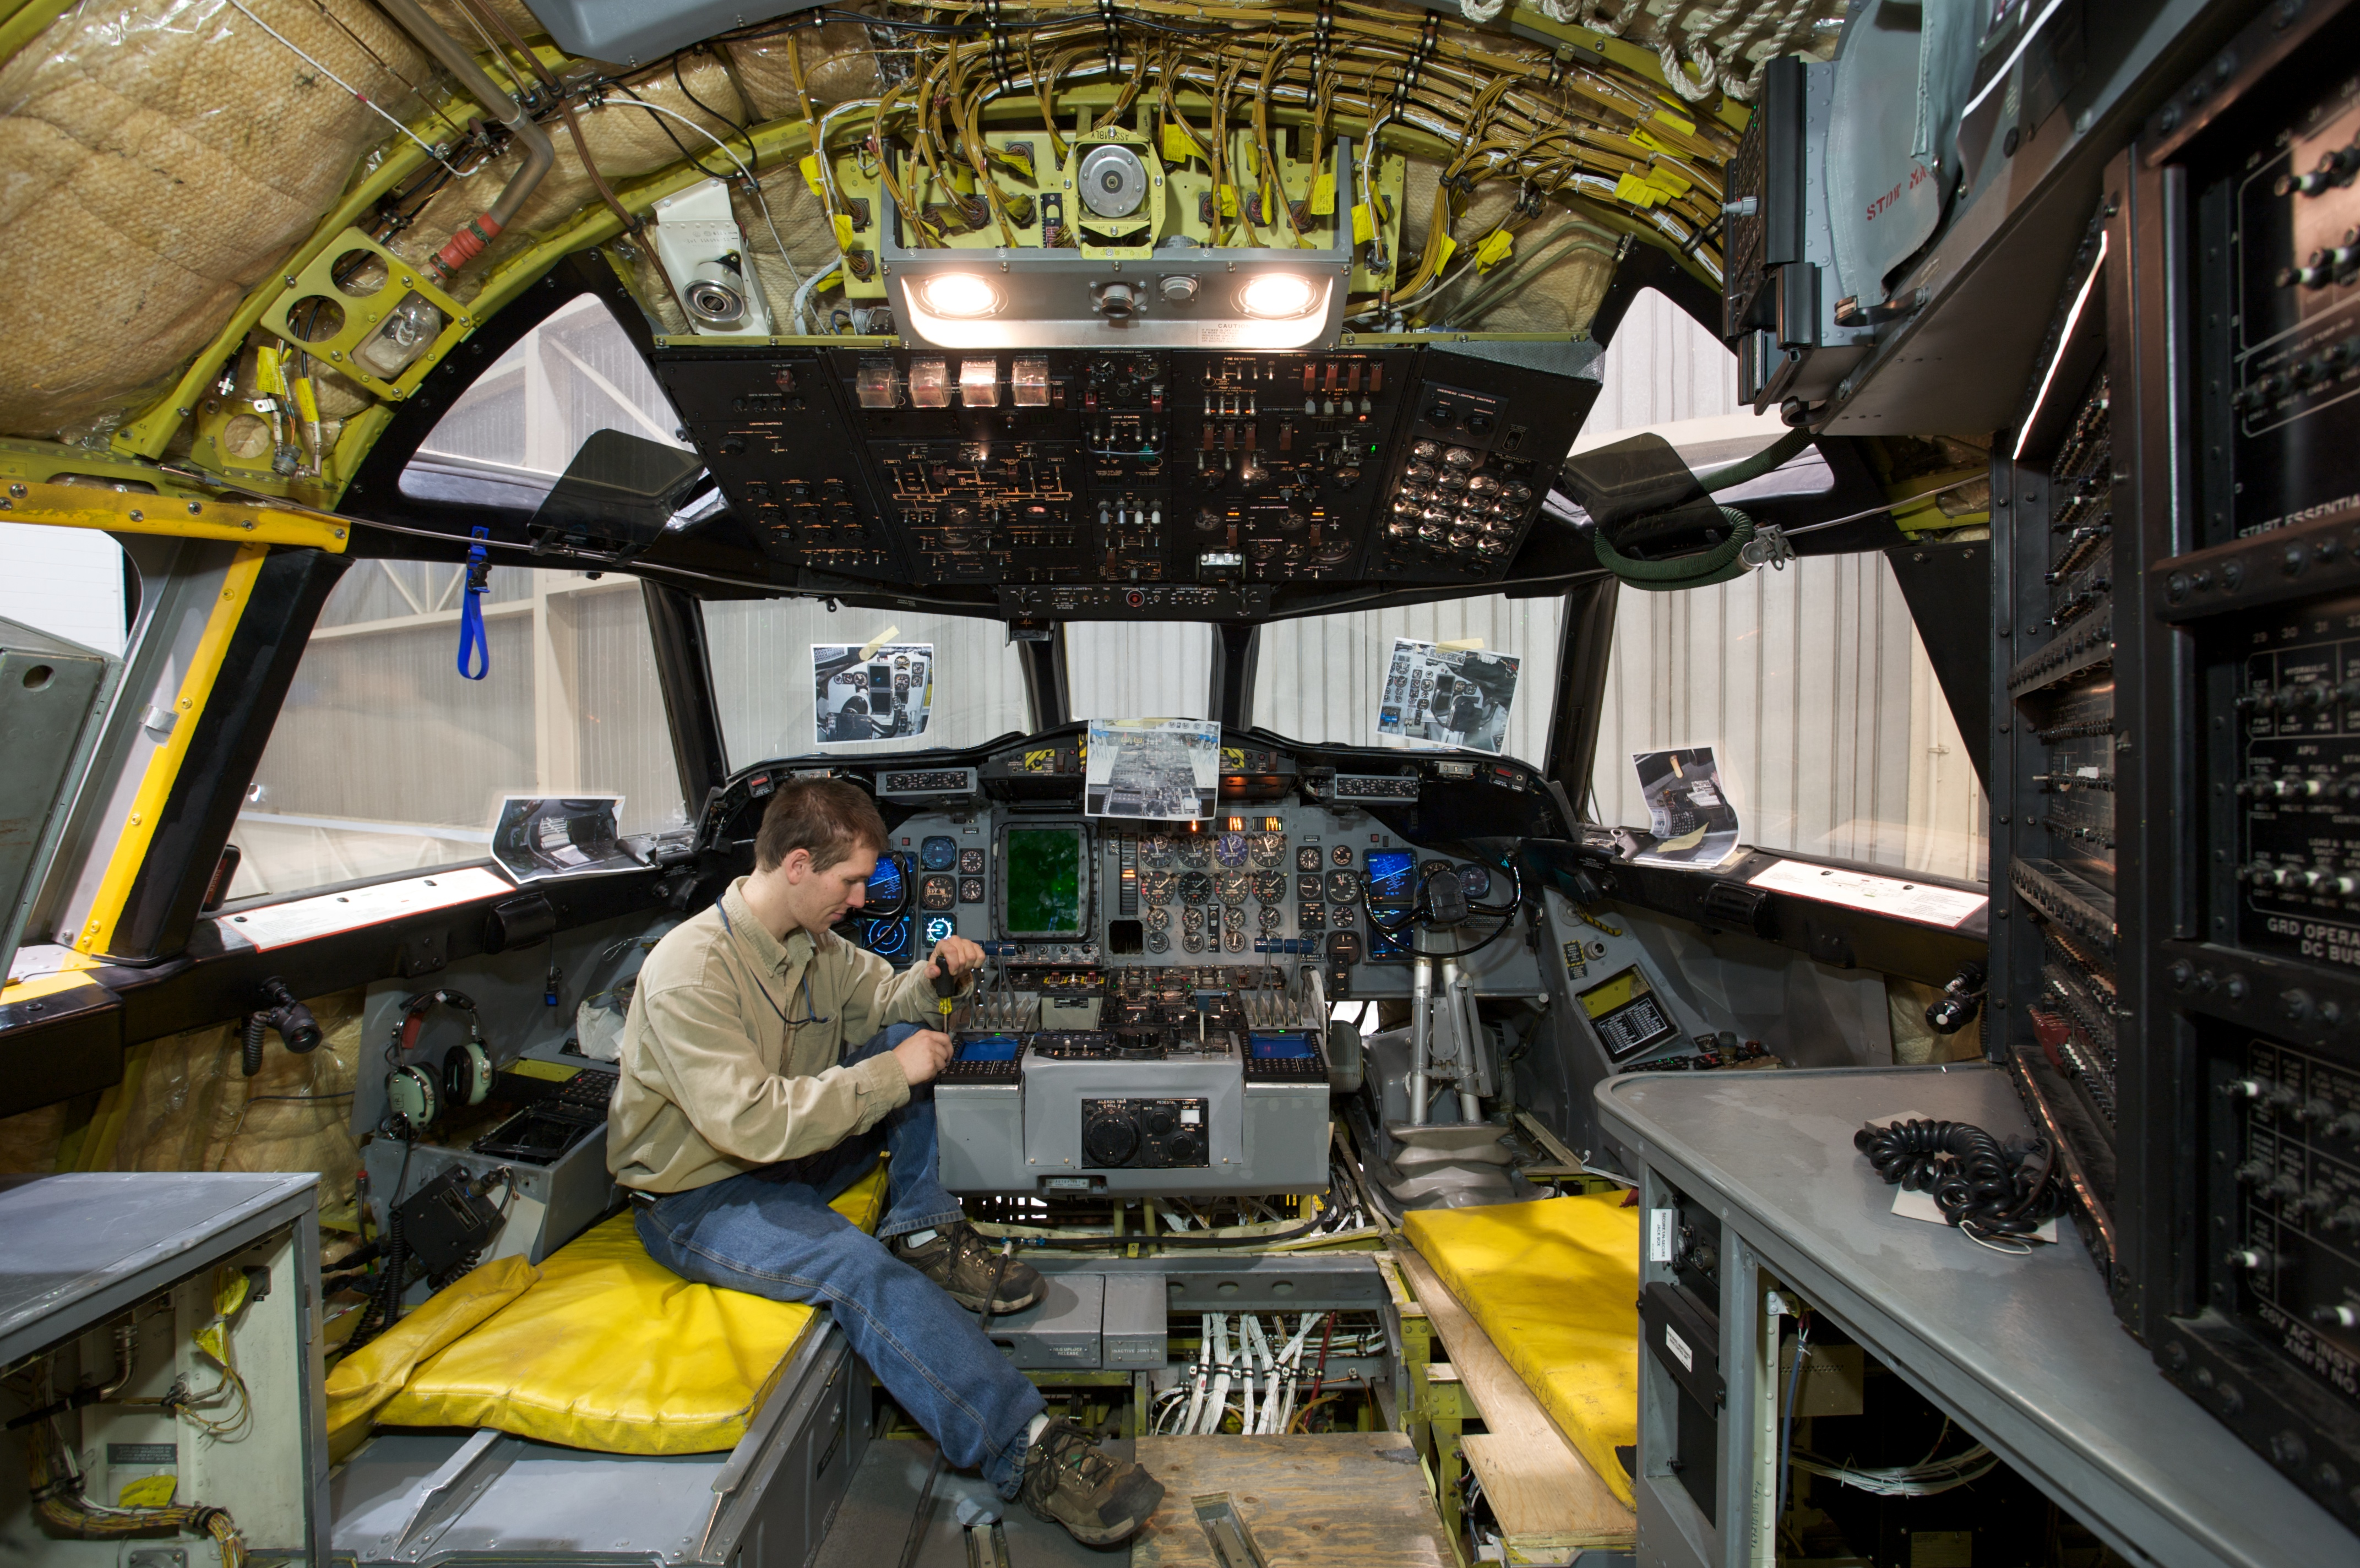 Aerospace Engineer working on the inside of an aircraft